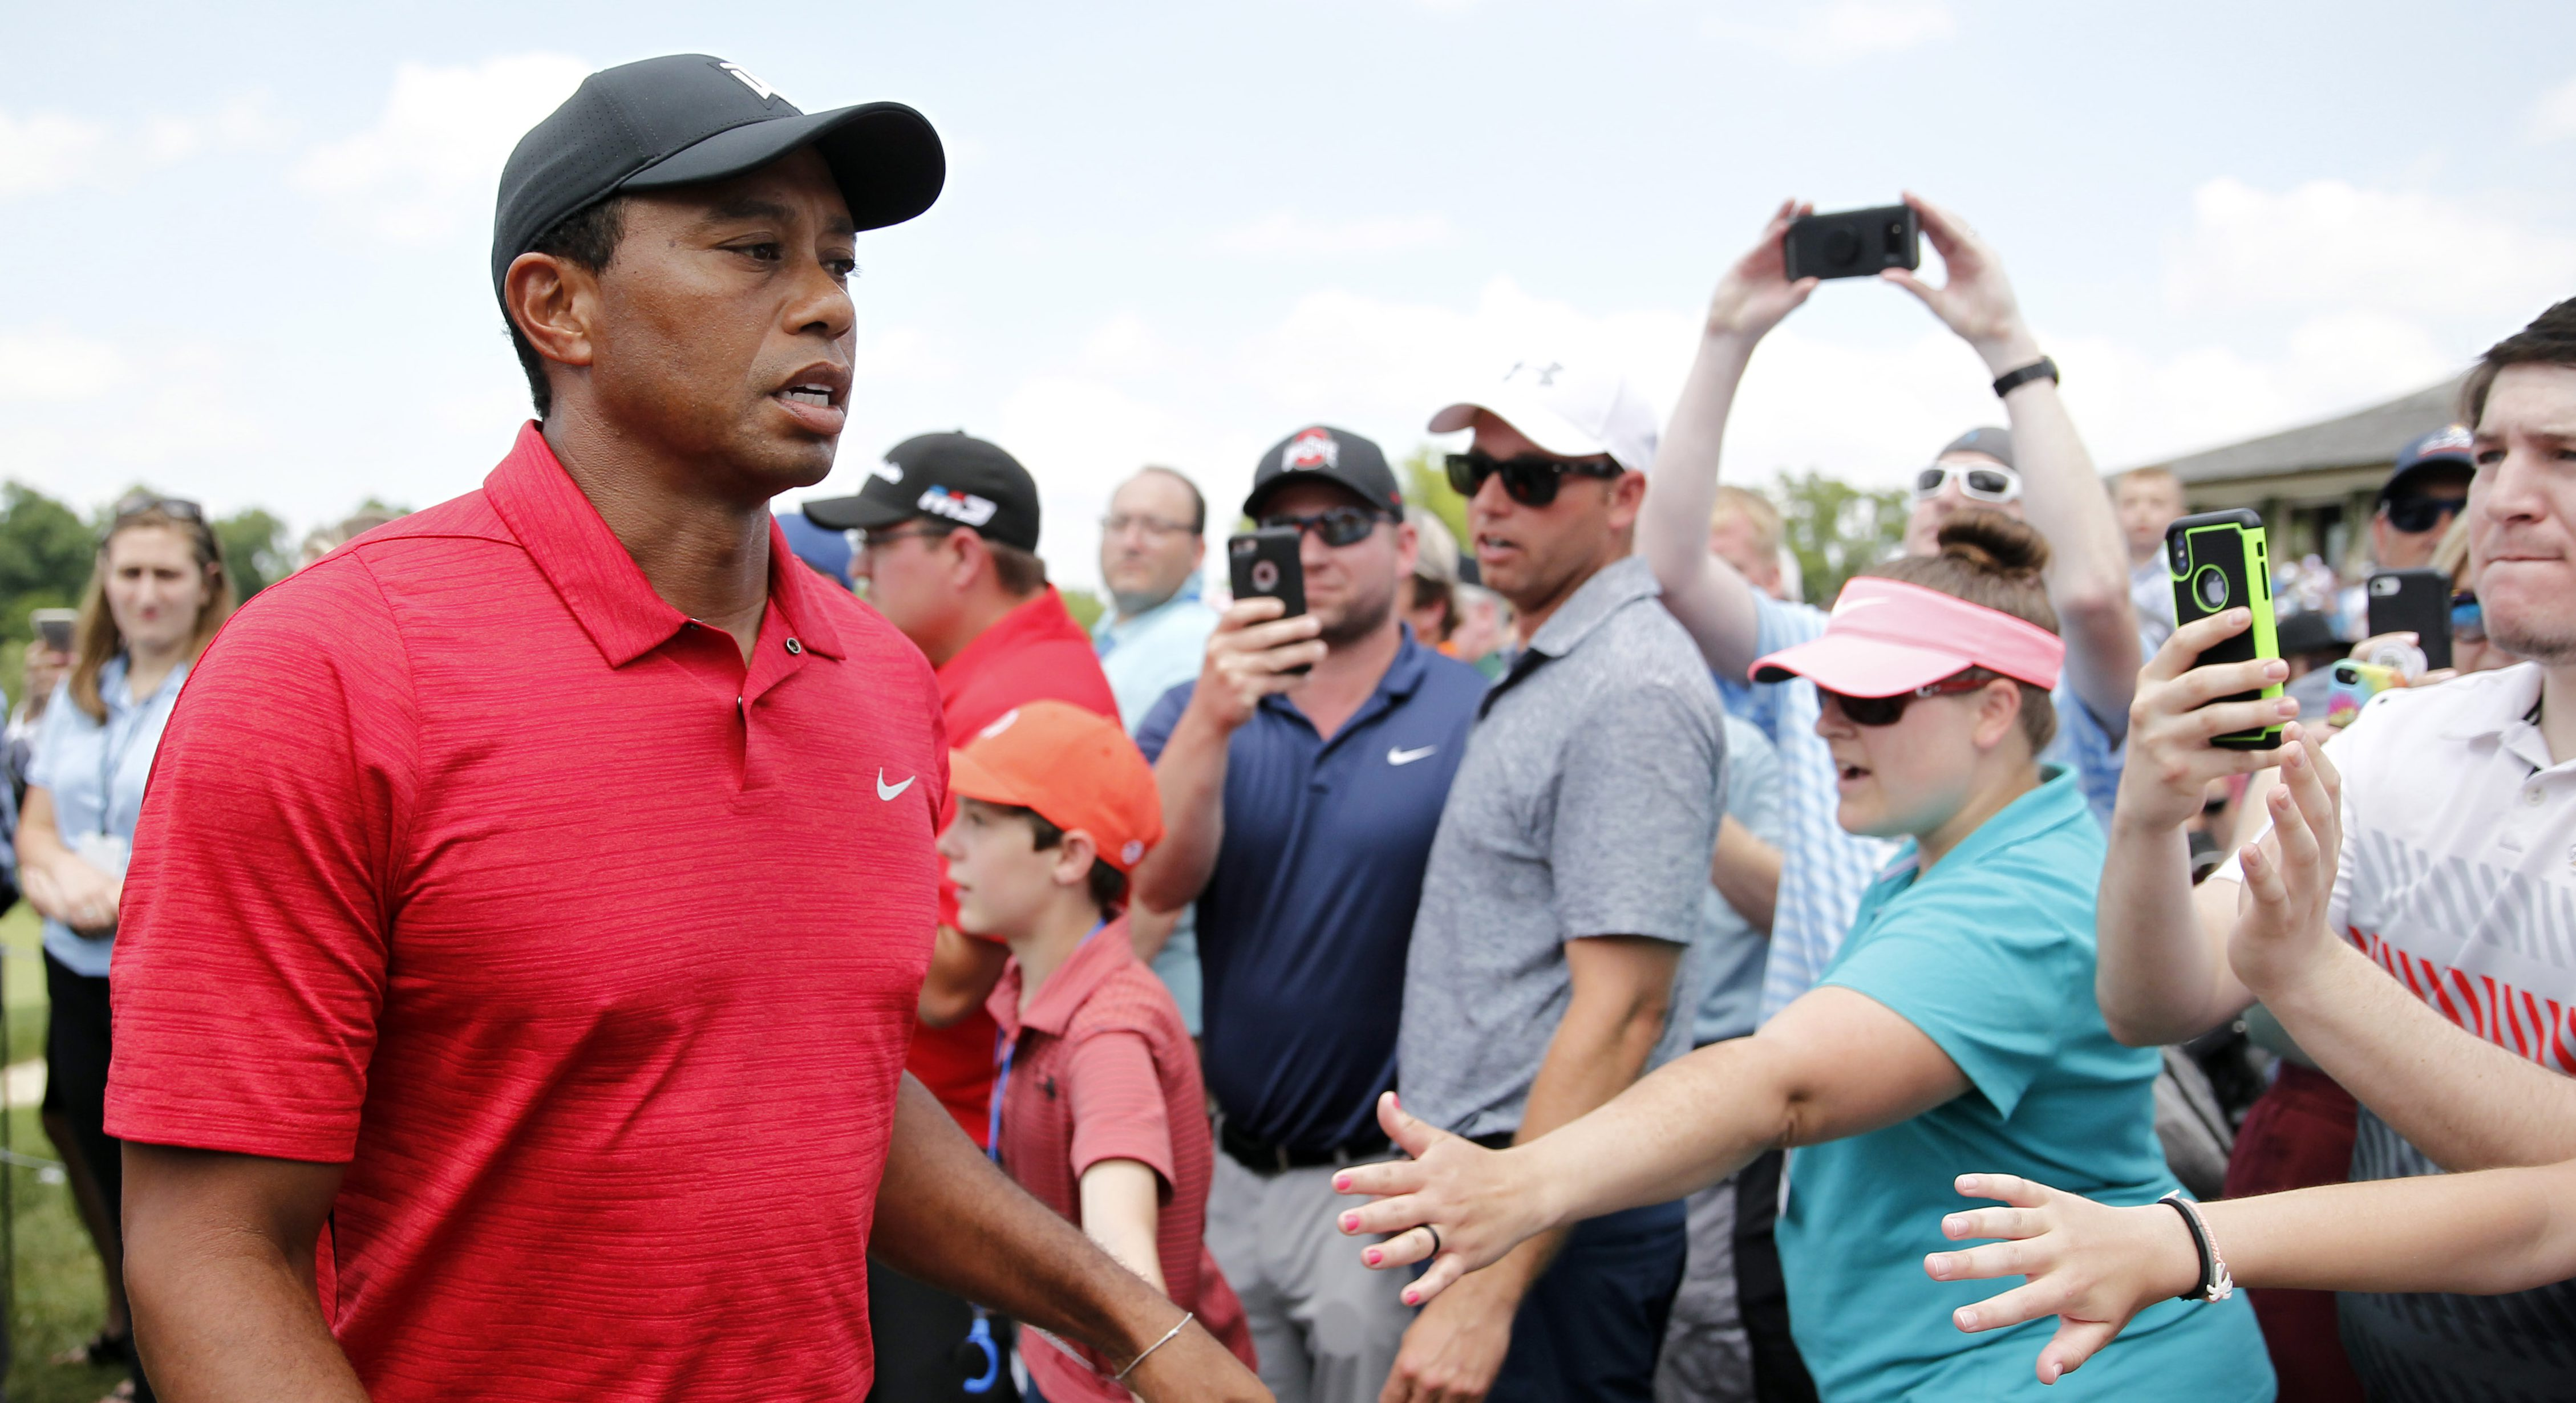 Jun 3, 2018; Dublin, OH, USA; Tiger Woods walks through the crowd after finishing the final round of The Memorial golf tournament at Muirfield Village Golf Club. Mandatory Credit: Caylor Arnold-USA TODAY Sports